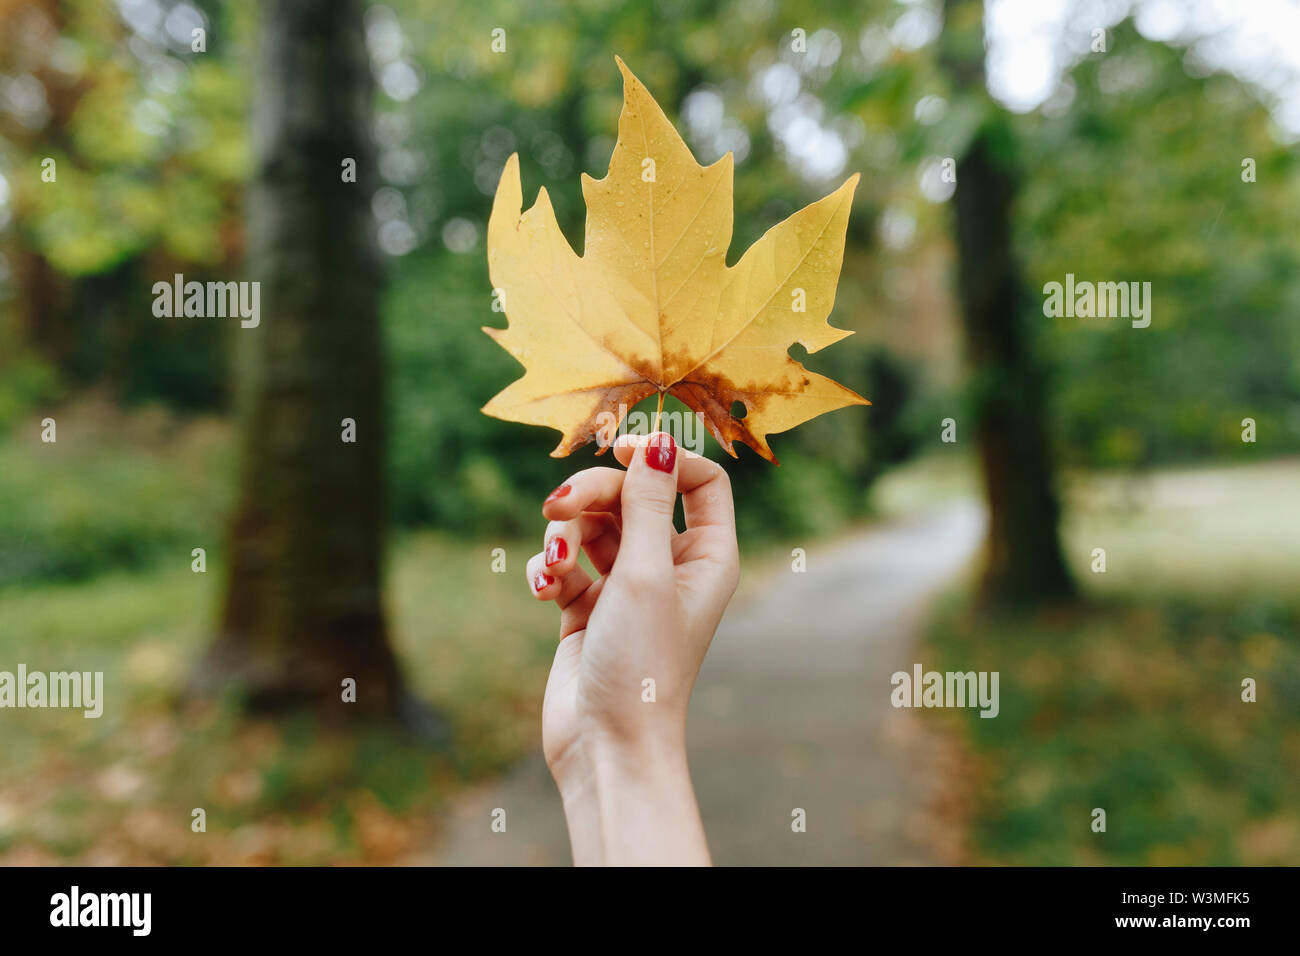 Hand of woman holding yellow leaf - Stock Image